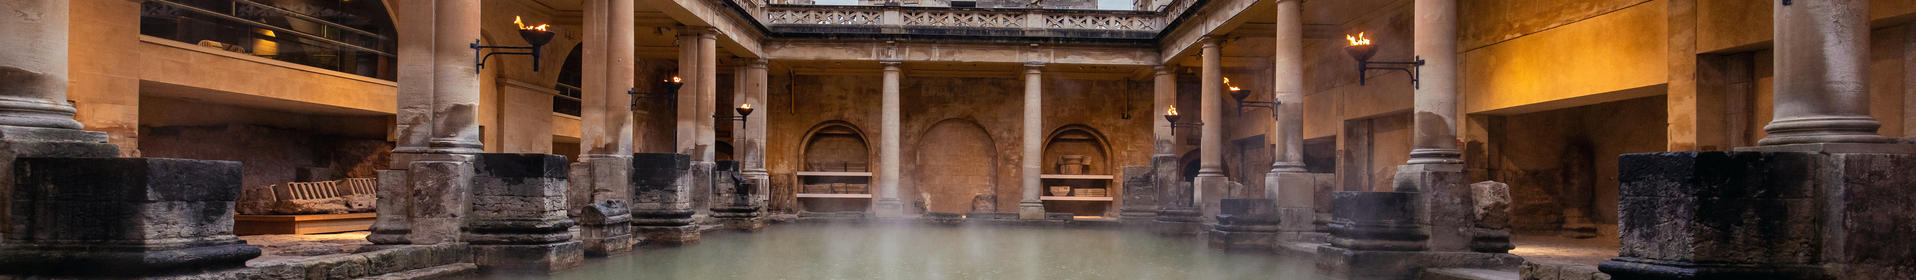 Image: View of the Great Bath, Rebecca Faith Photography